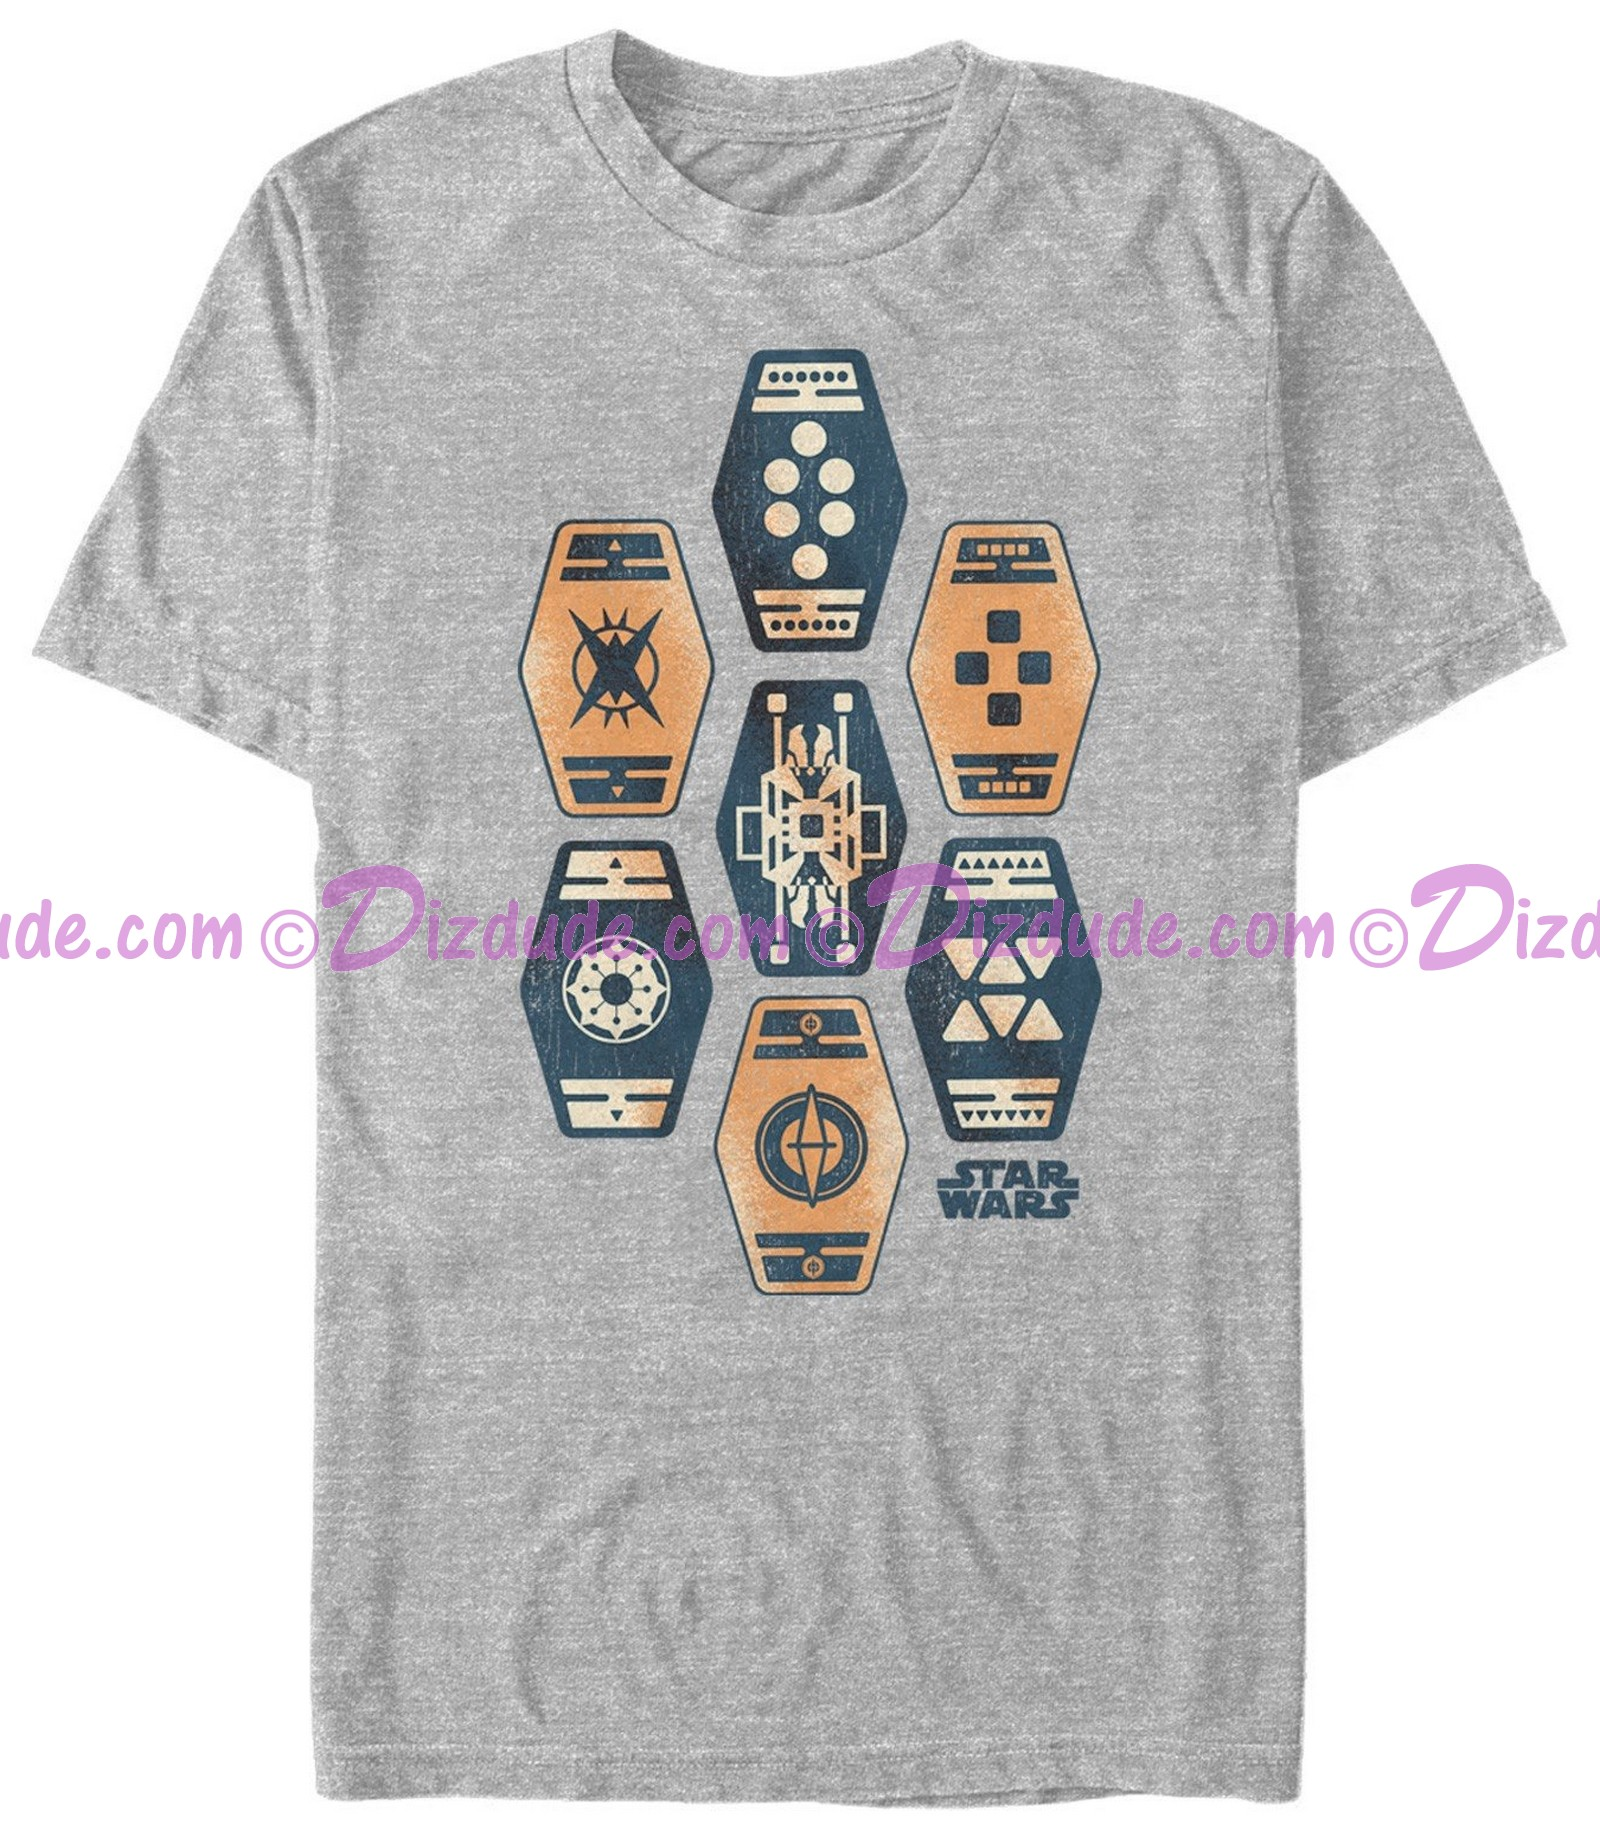 SOLO A Star Wars Story Play a Game of Sabacc Adult T-Shirt (Tshirt, T shirt or Tee)  © Dizdude.com